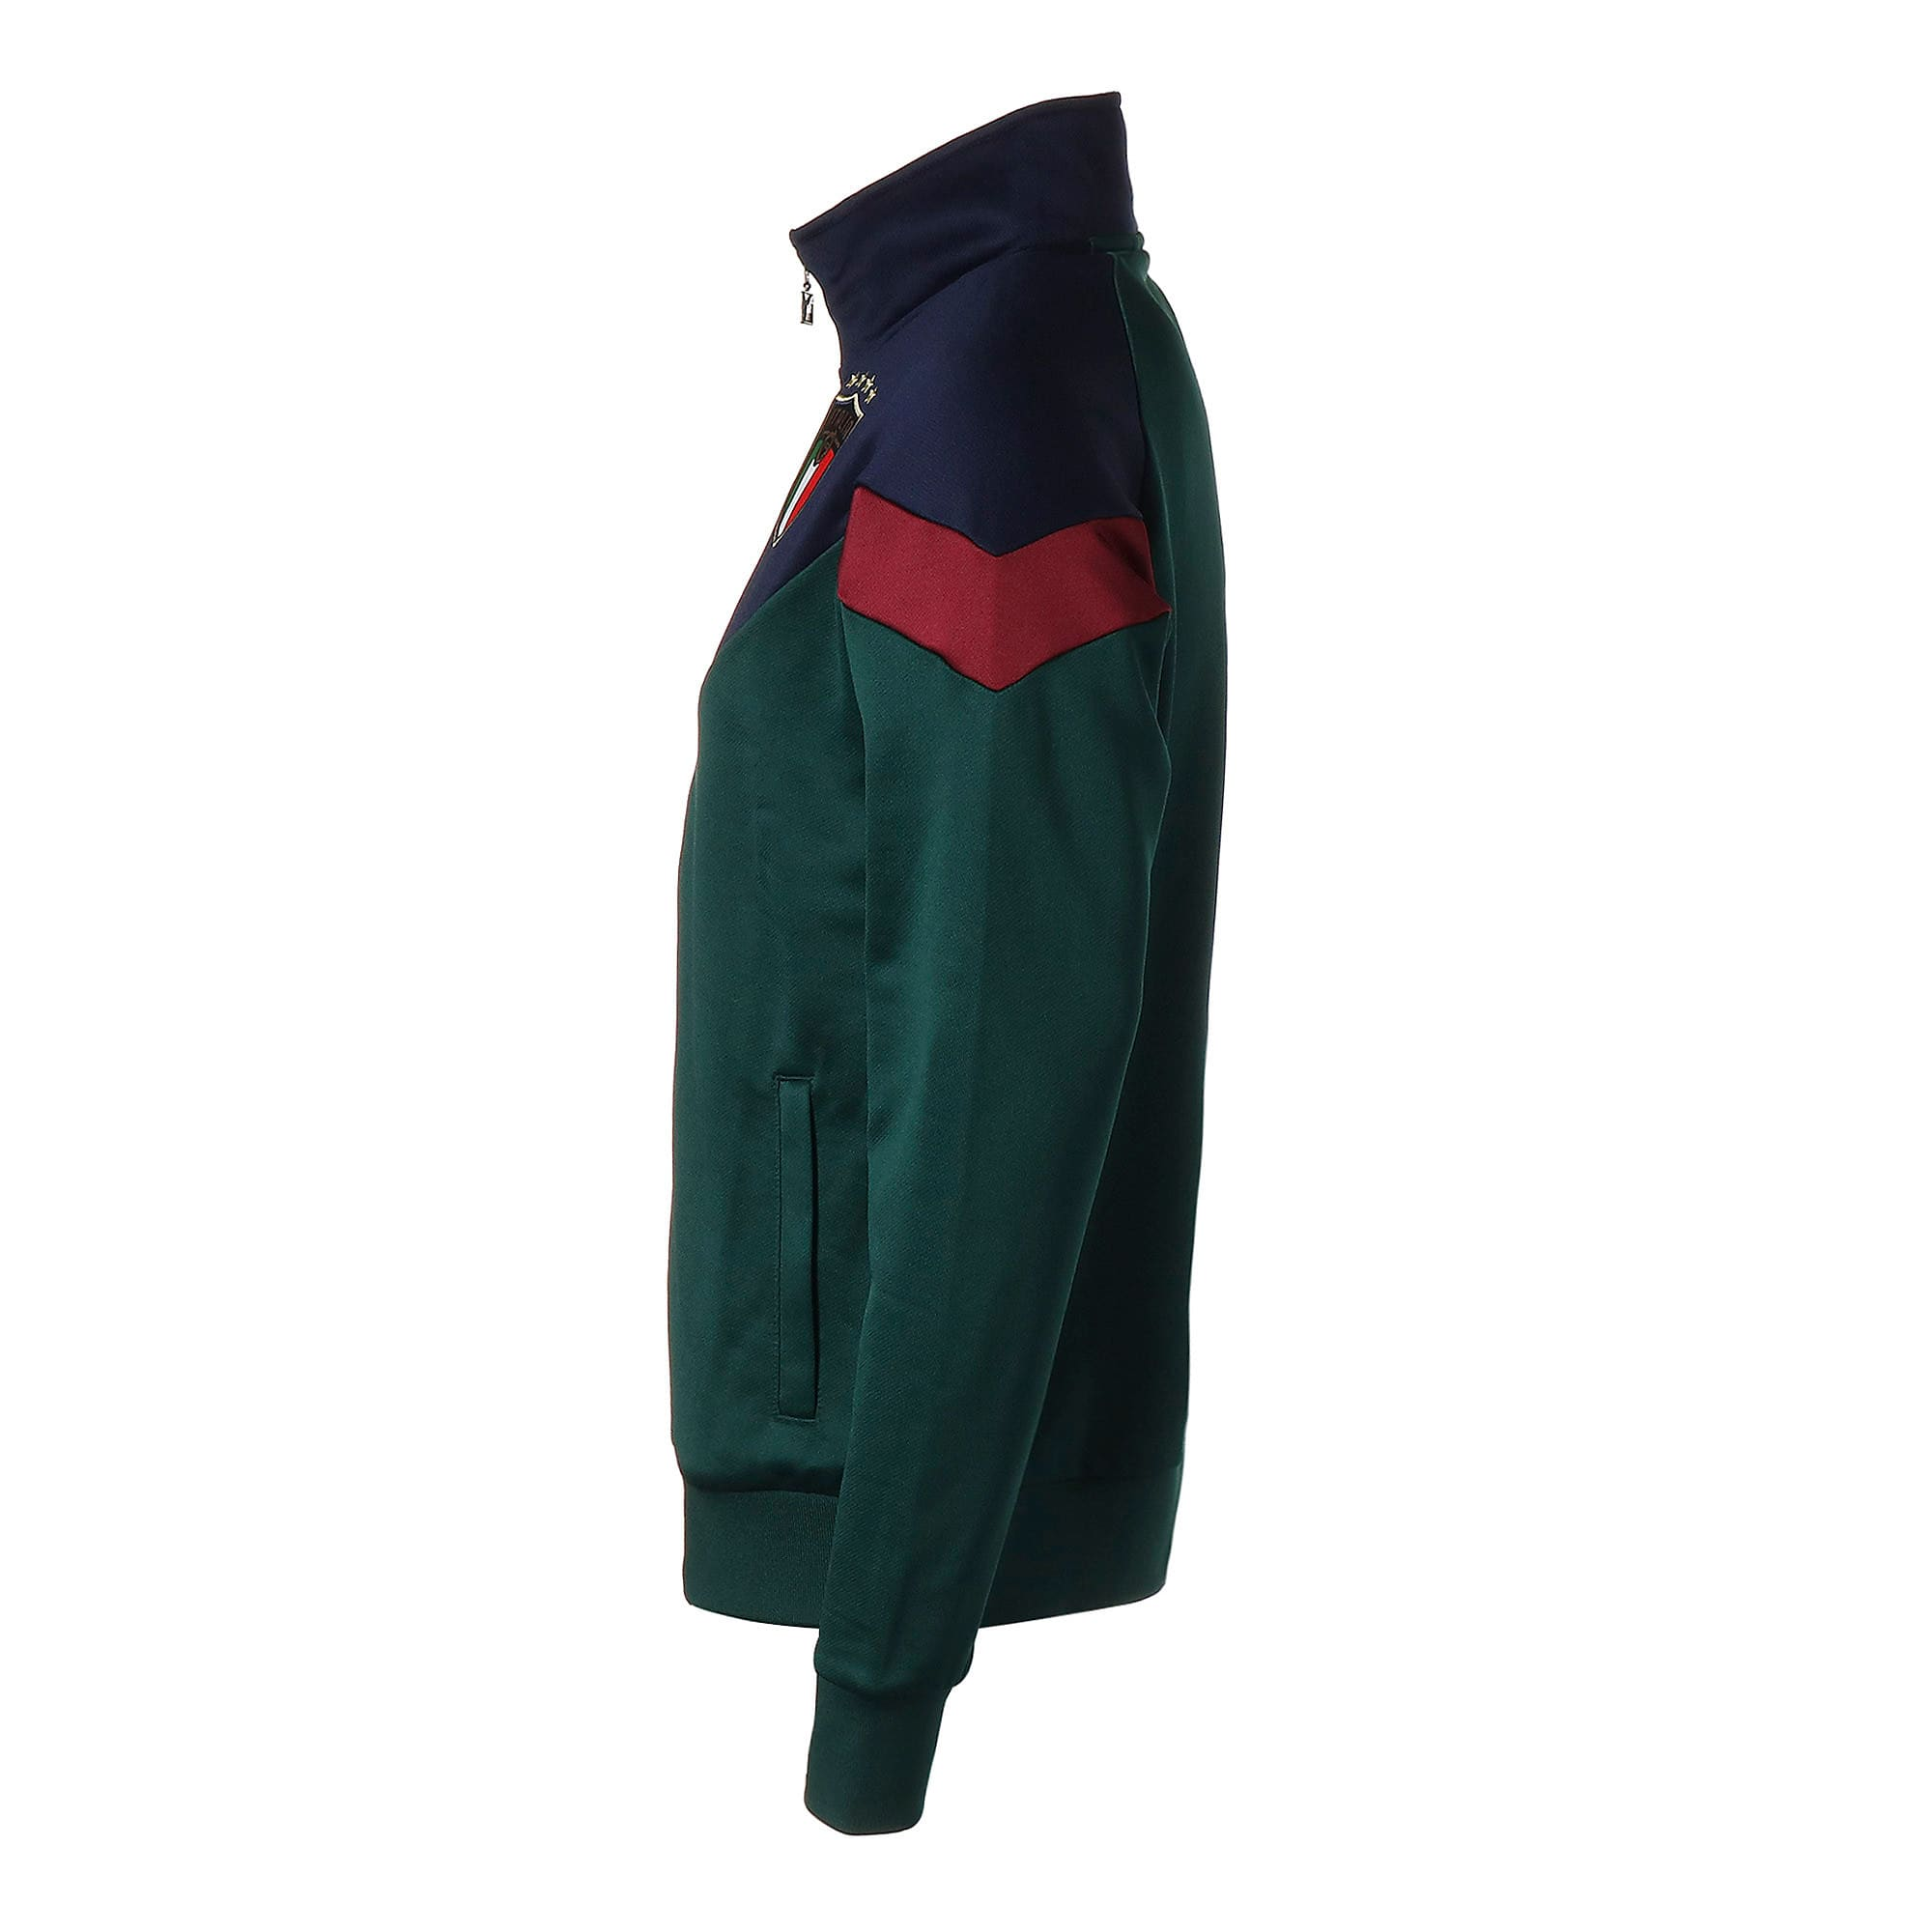 Thumbnail 2 of FIGC イタリア ICONIC MCS トラックジャケット, Ponderosa Pine-Peacoat, medium-JPN